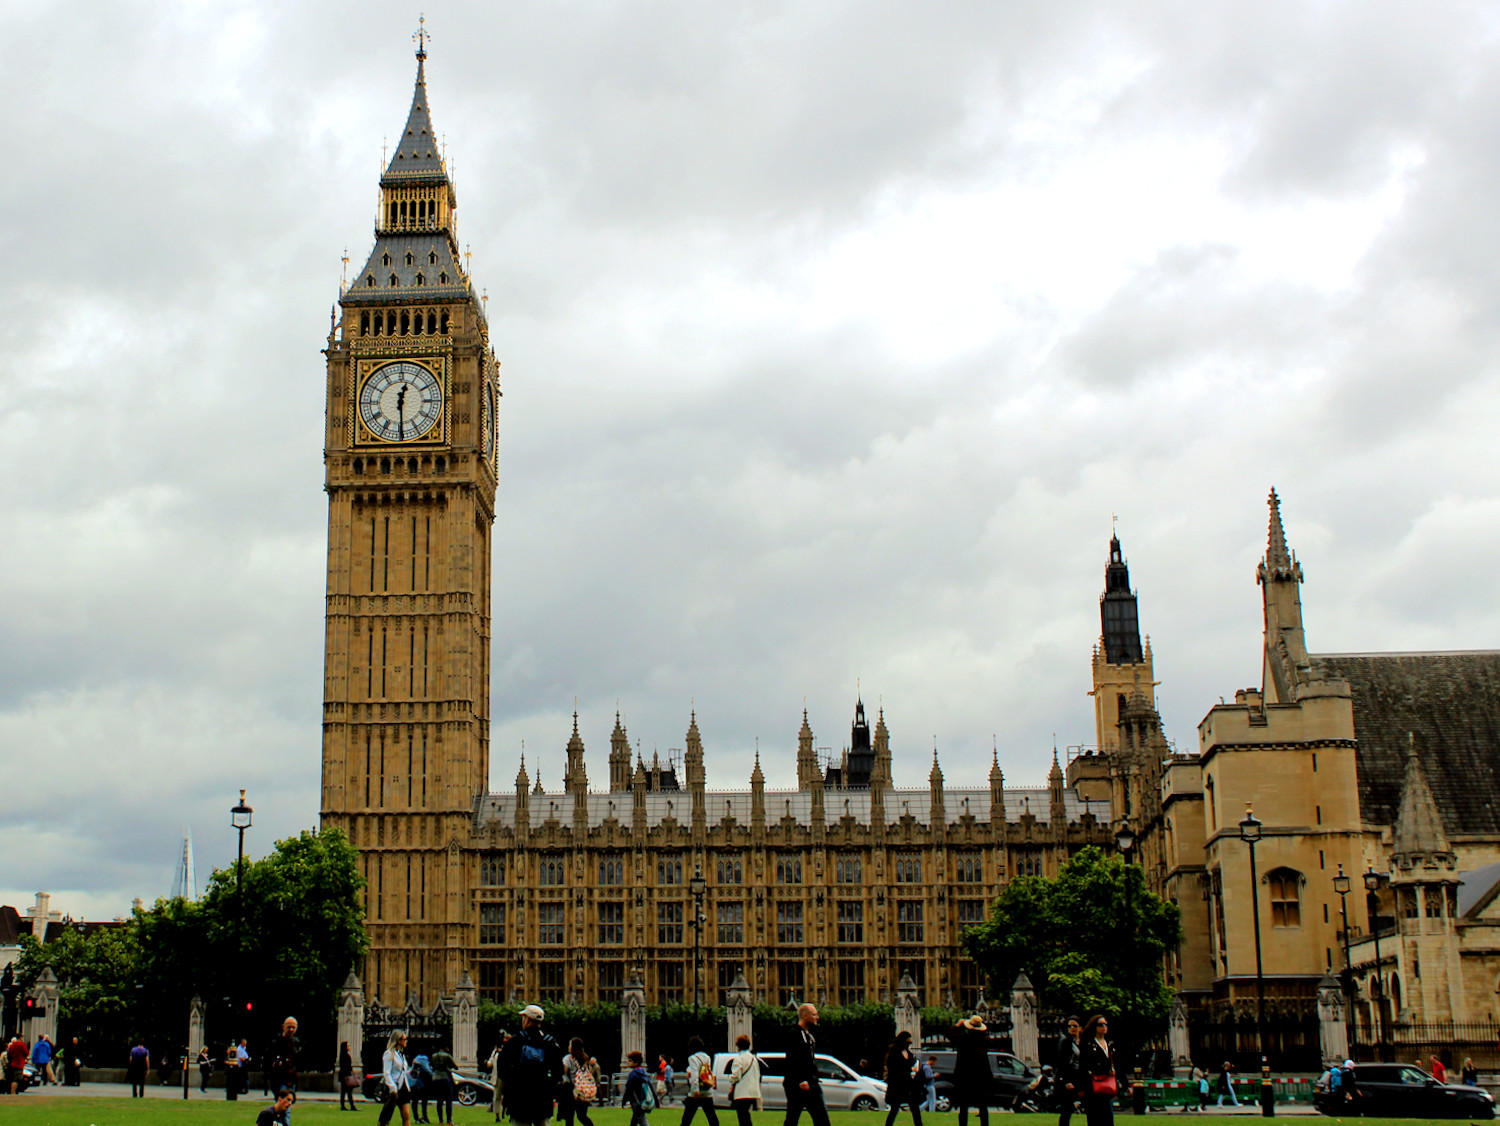 Big Ben - The insider's guide to London